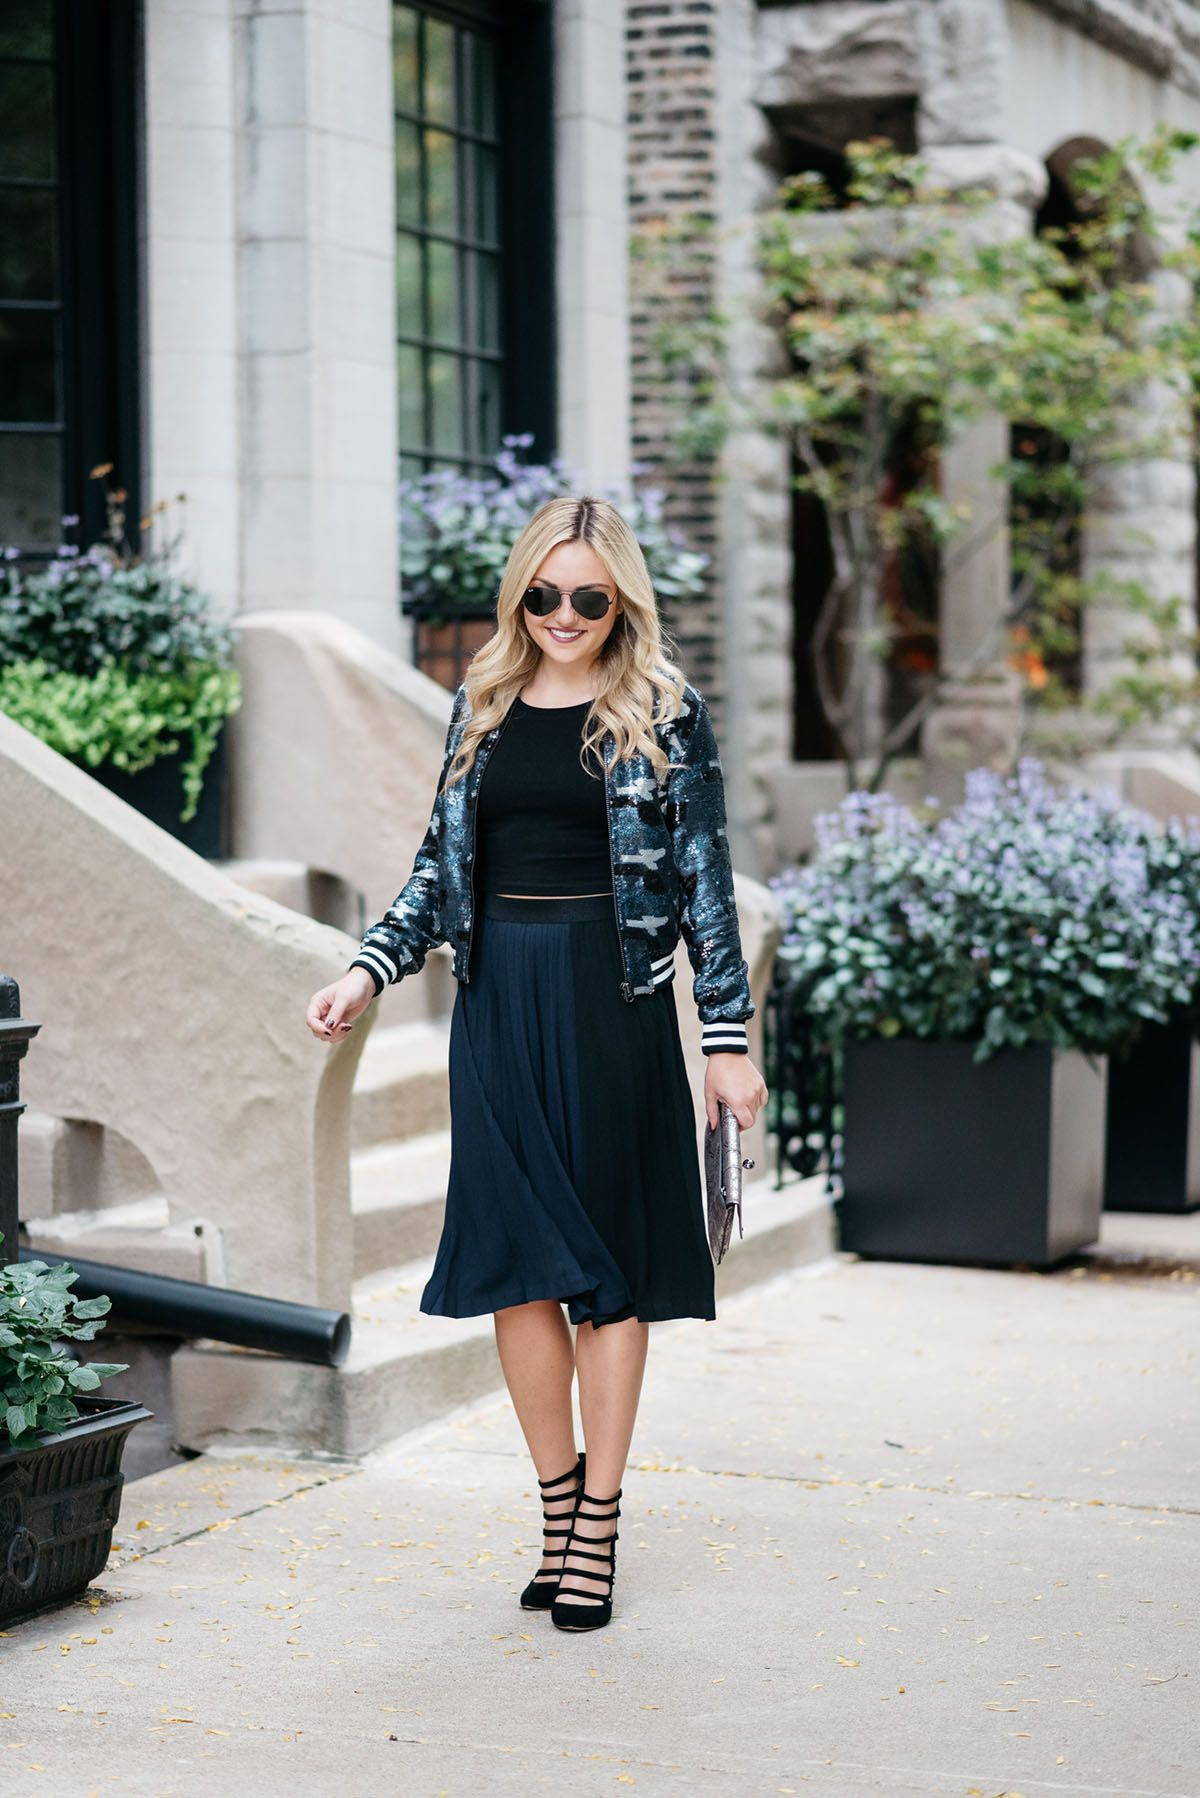 Bomber jacket and pleated skirt